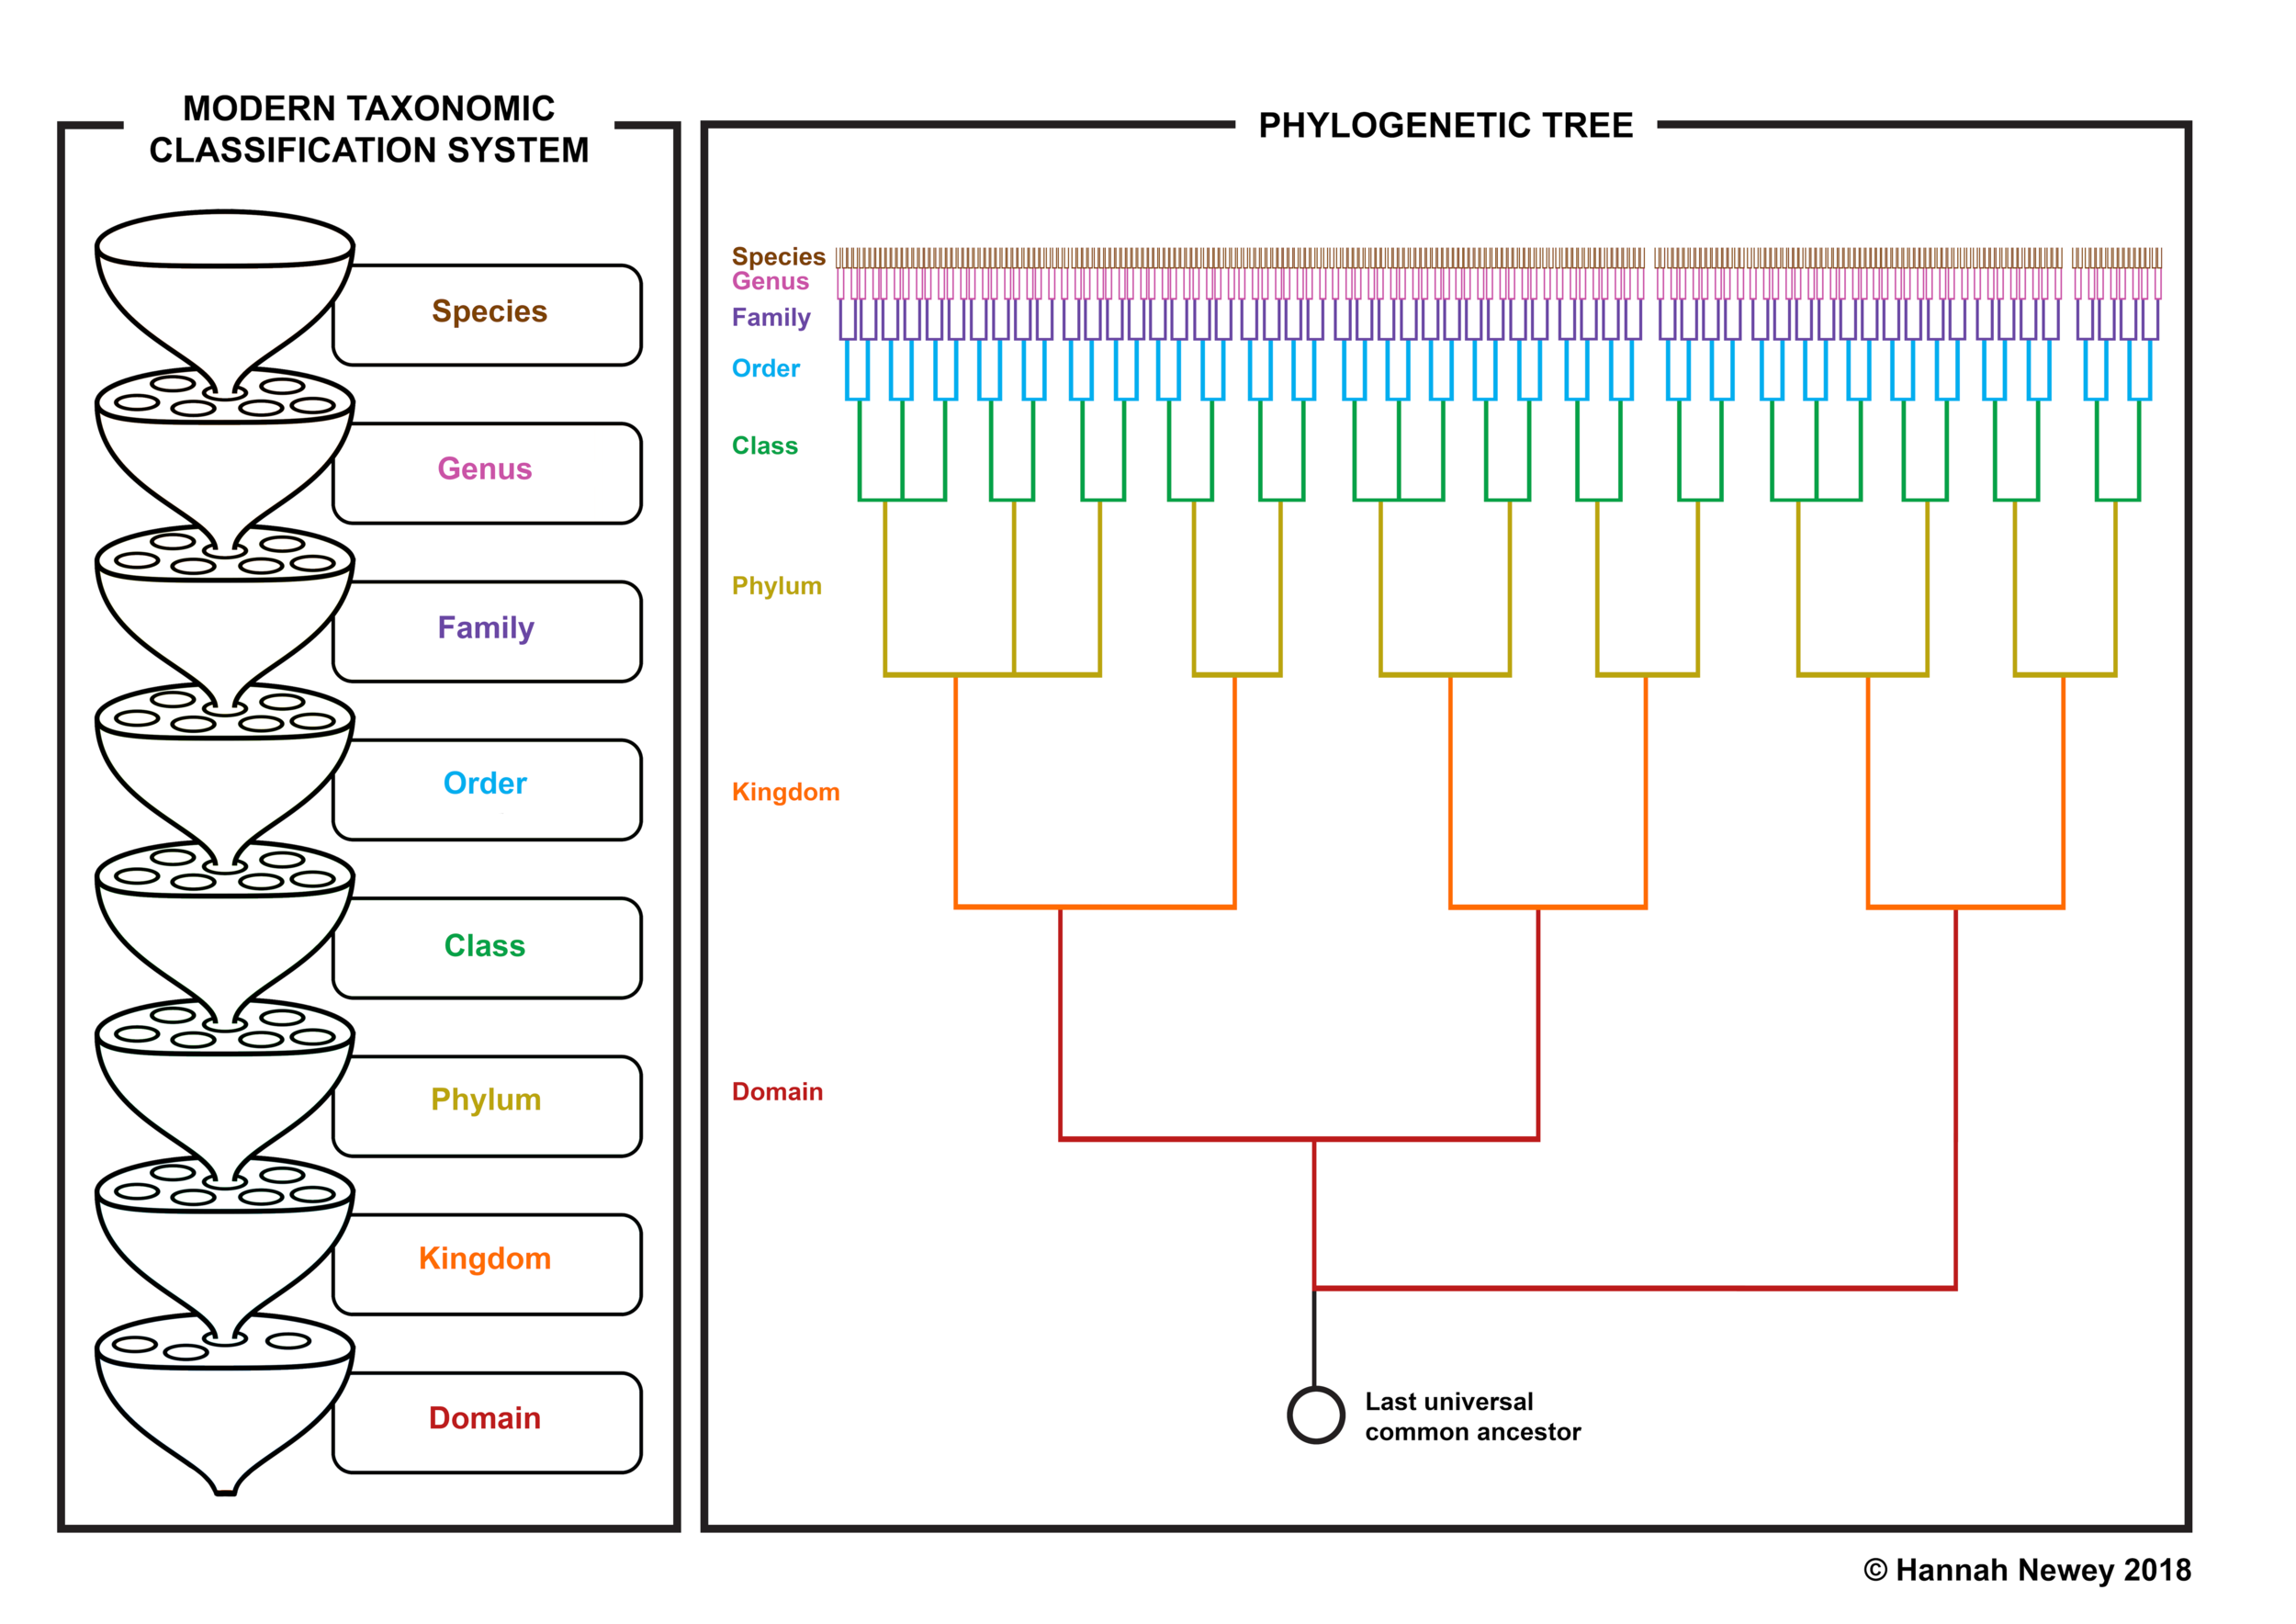 TAXONOMY AND TREE.png